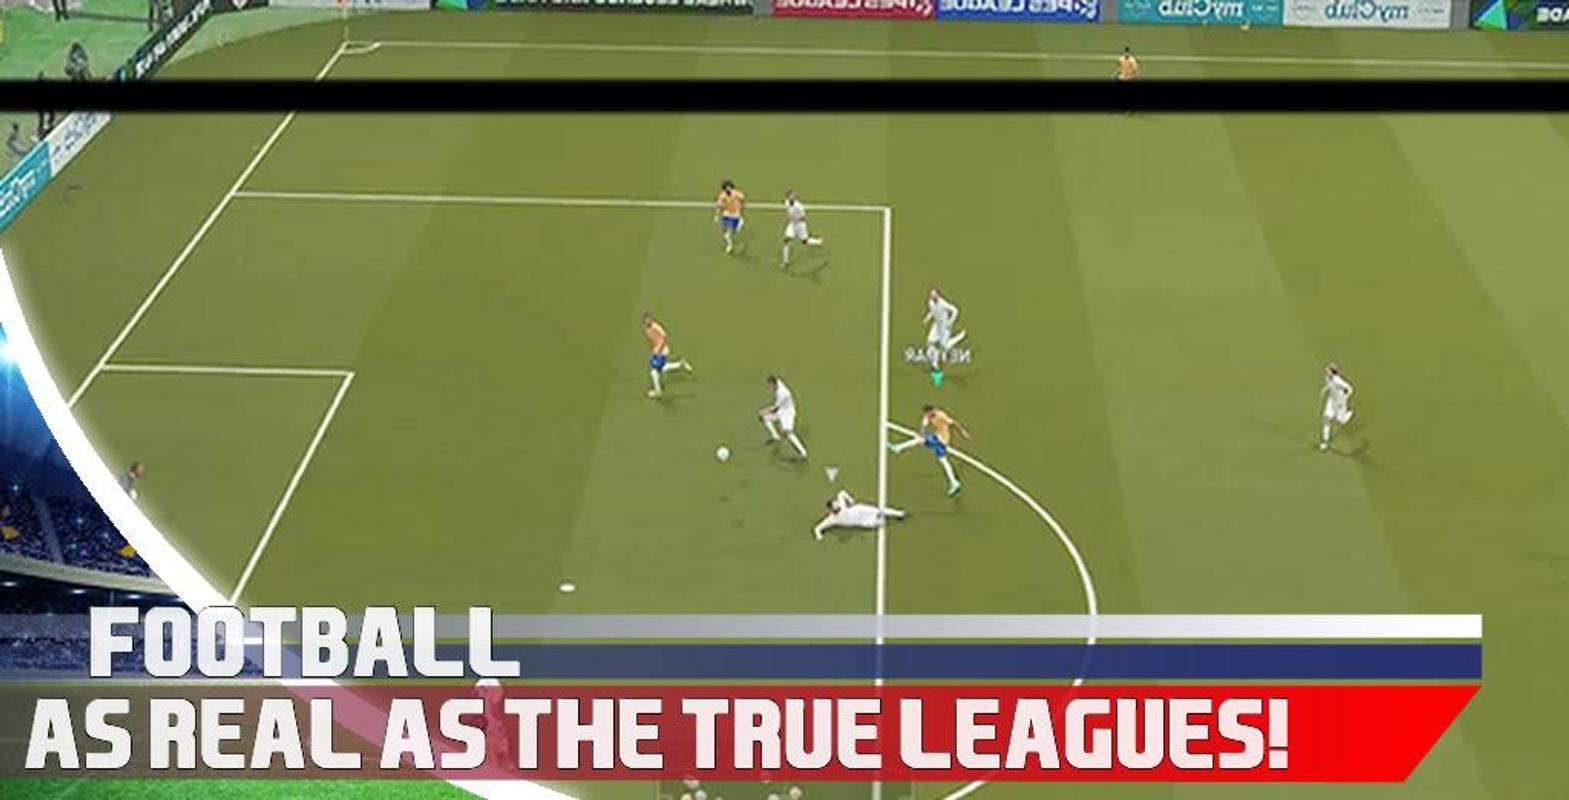 Football League 2019 For Android Apk Download